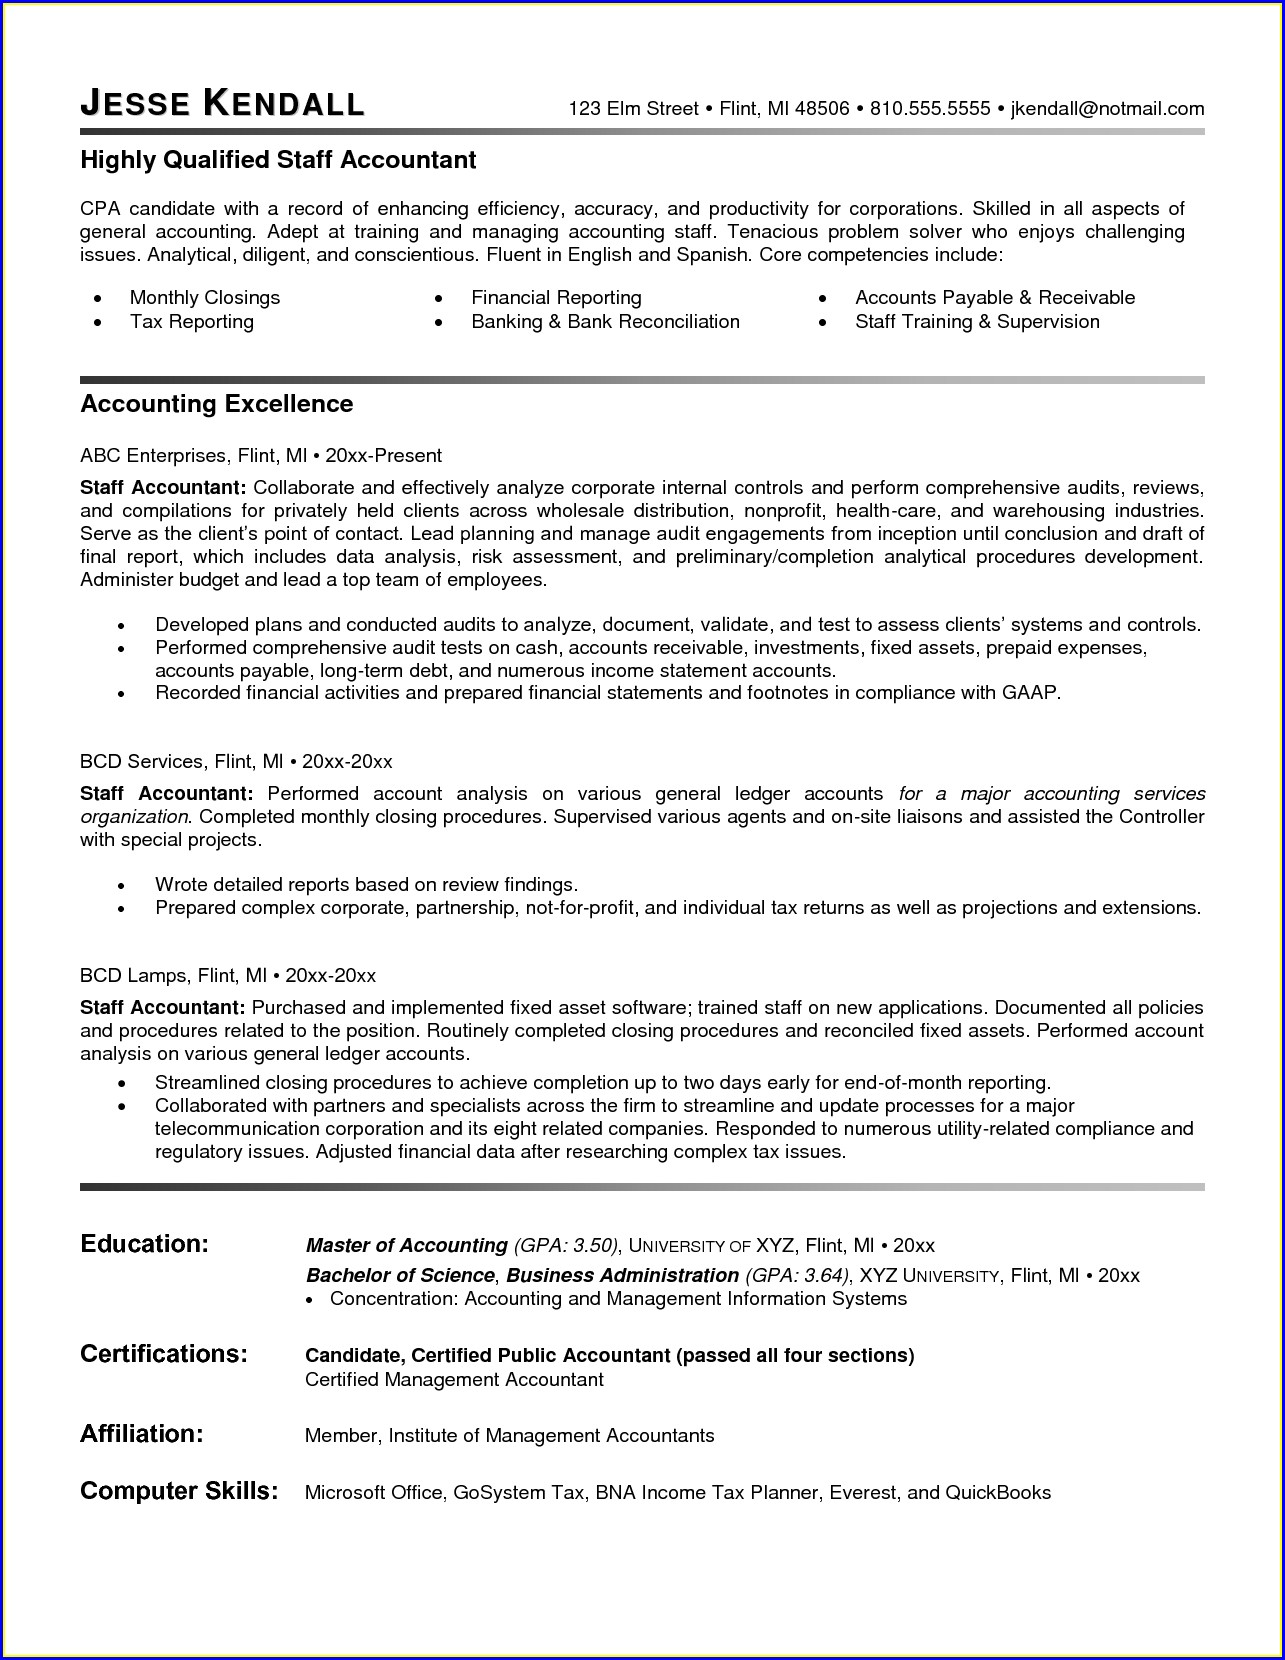 Resumes Samples For Accounting Jobs